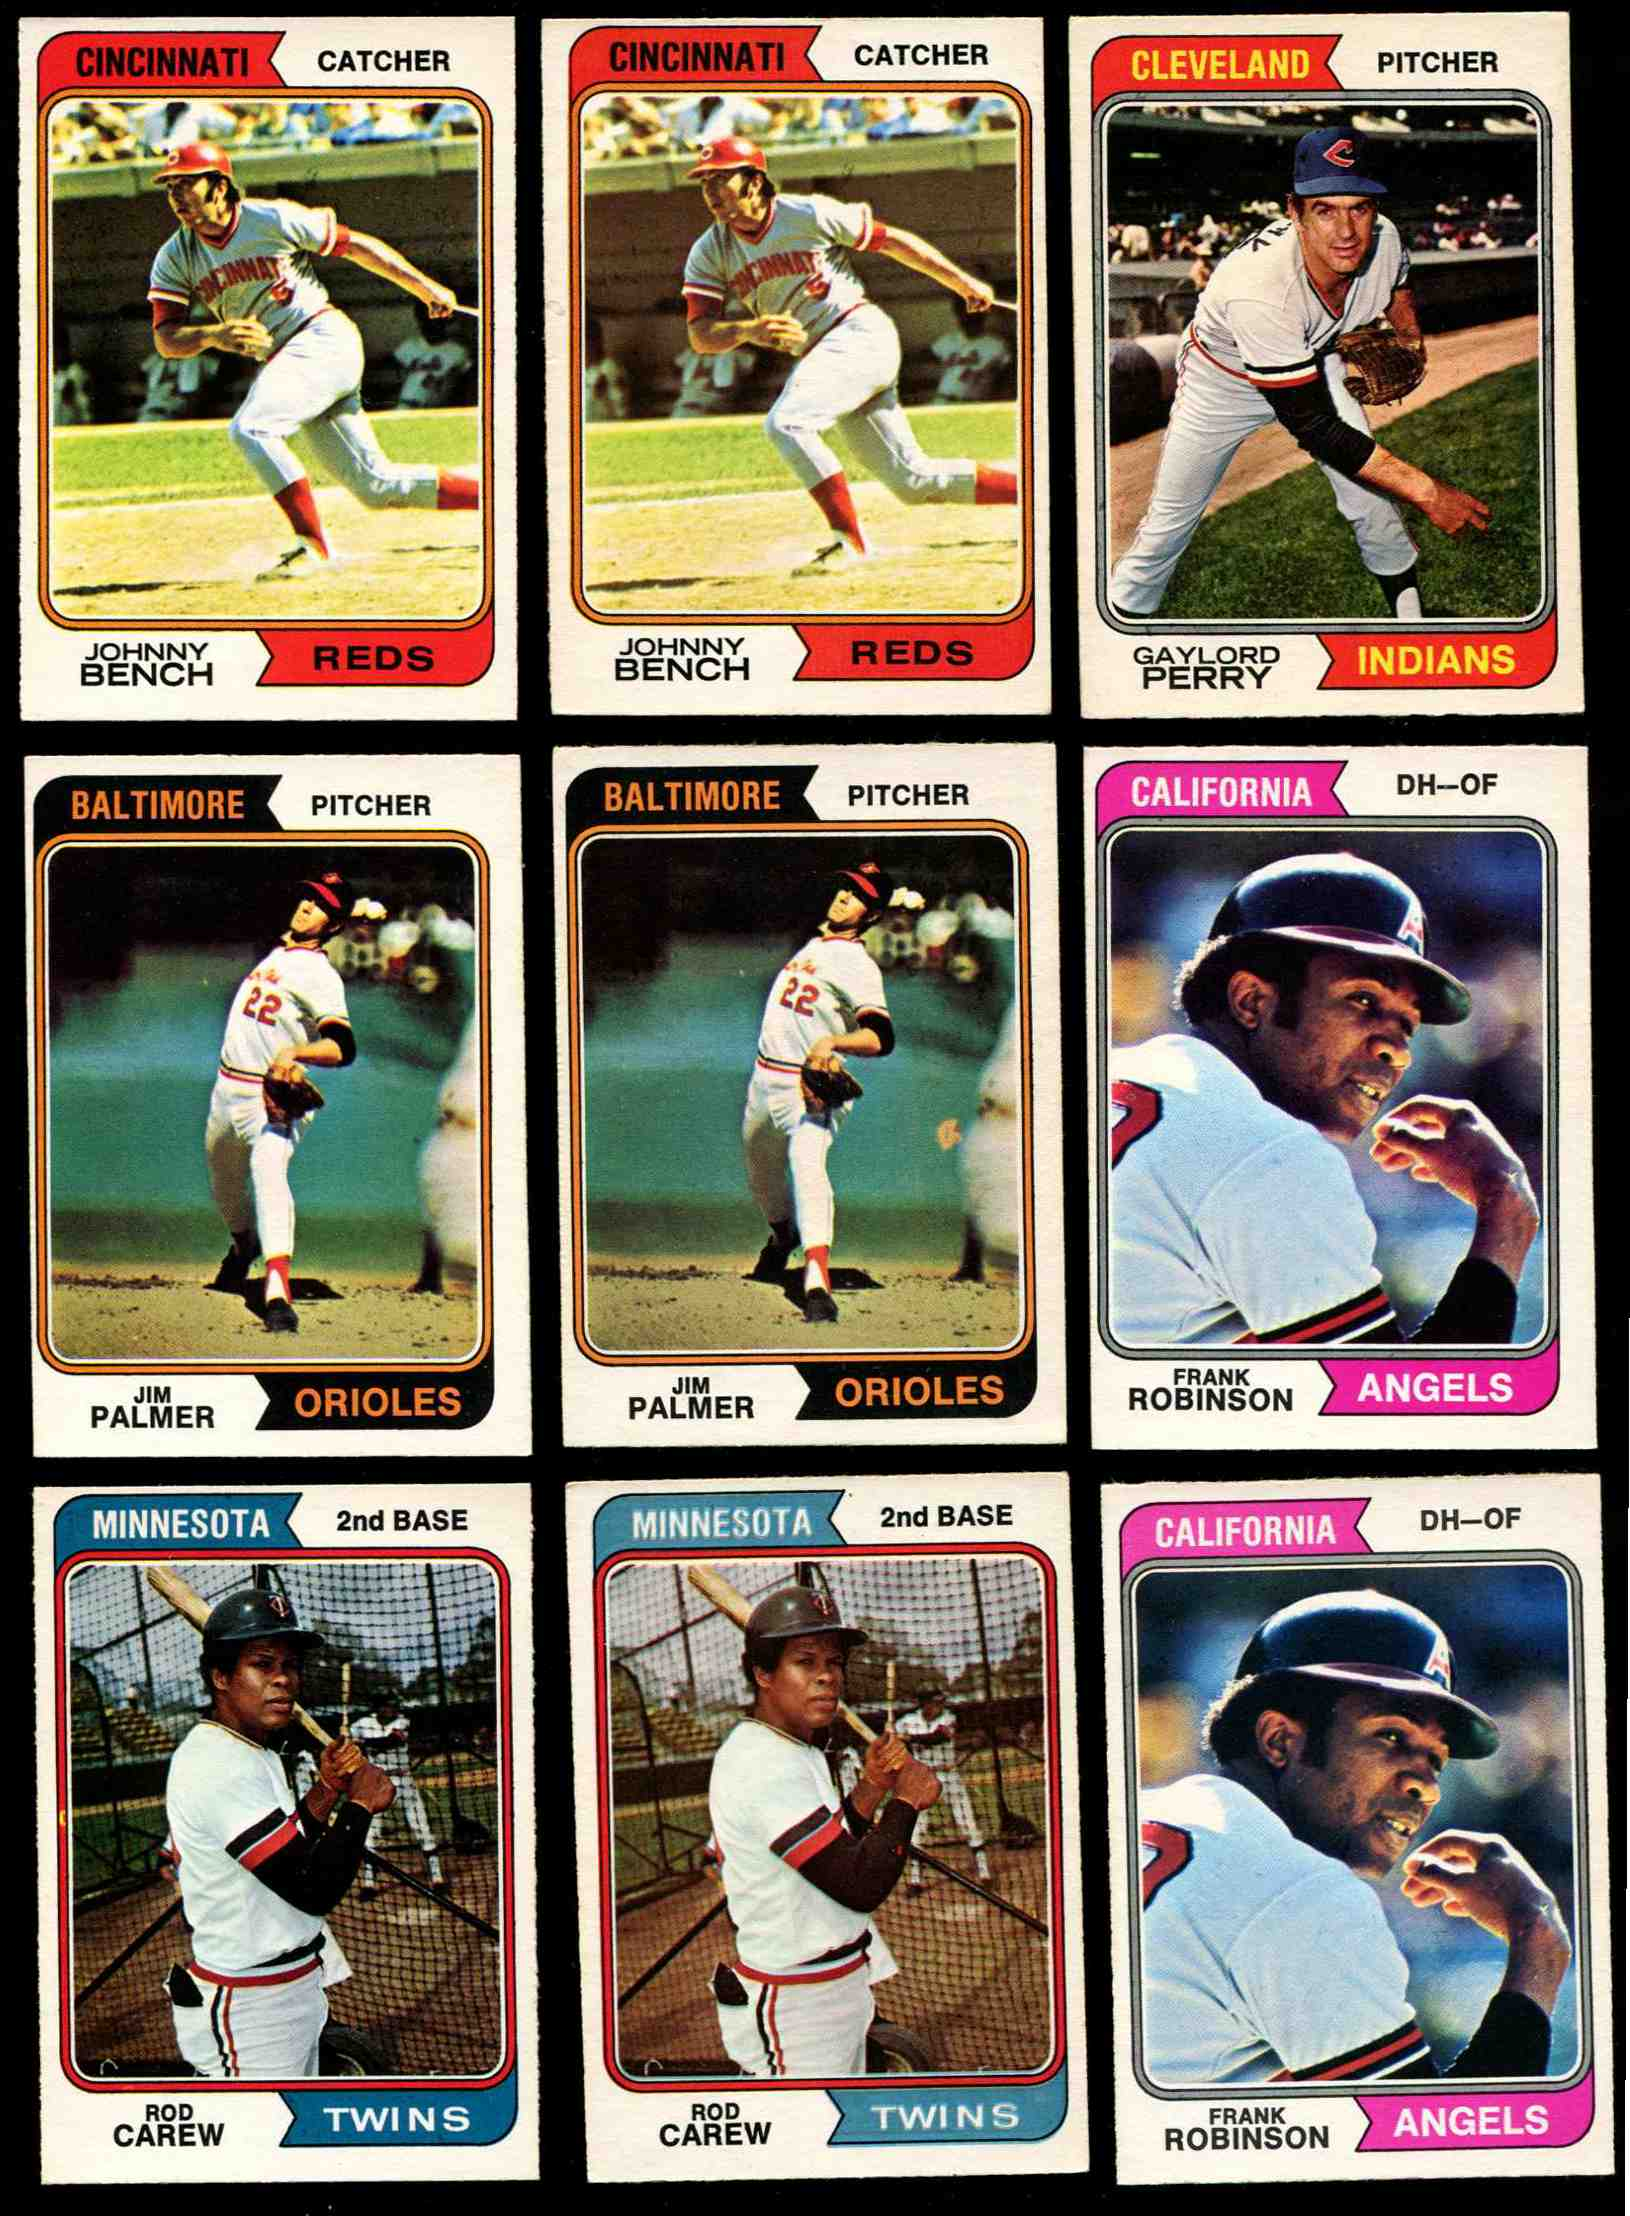 1974 O-Pee-Chee/OPC #.35 Gaylord Perry (Indians) Baseball cards value